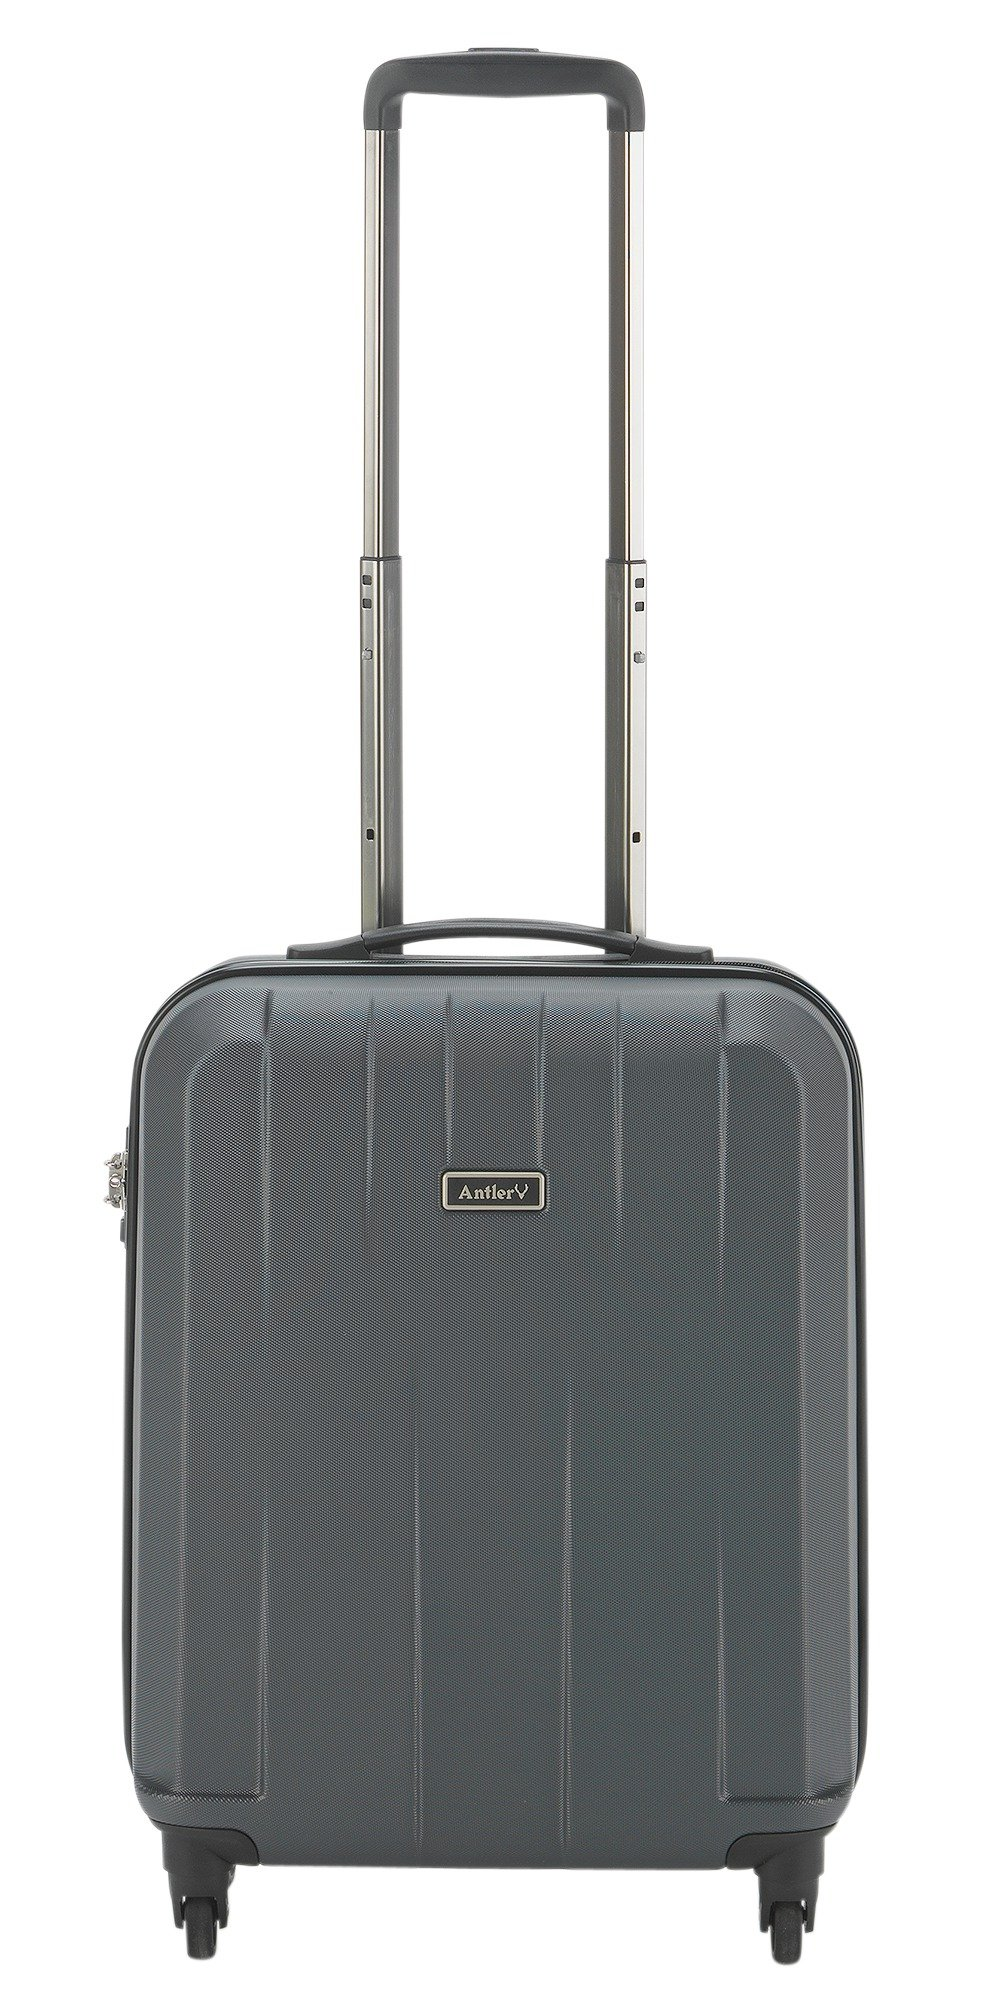 Image of Antler Quadrant Small 4 Wheel Hard Suitcase - Black/Silver